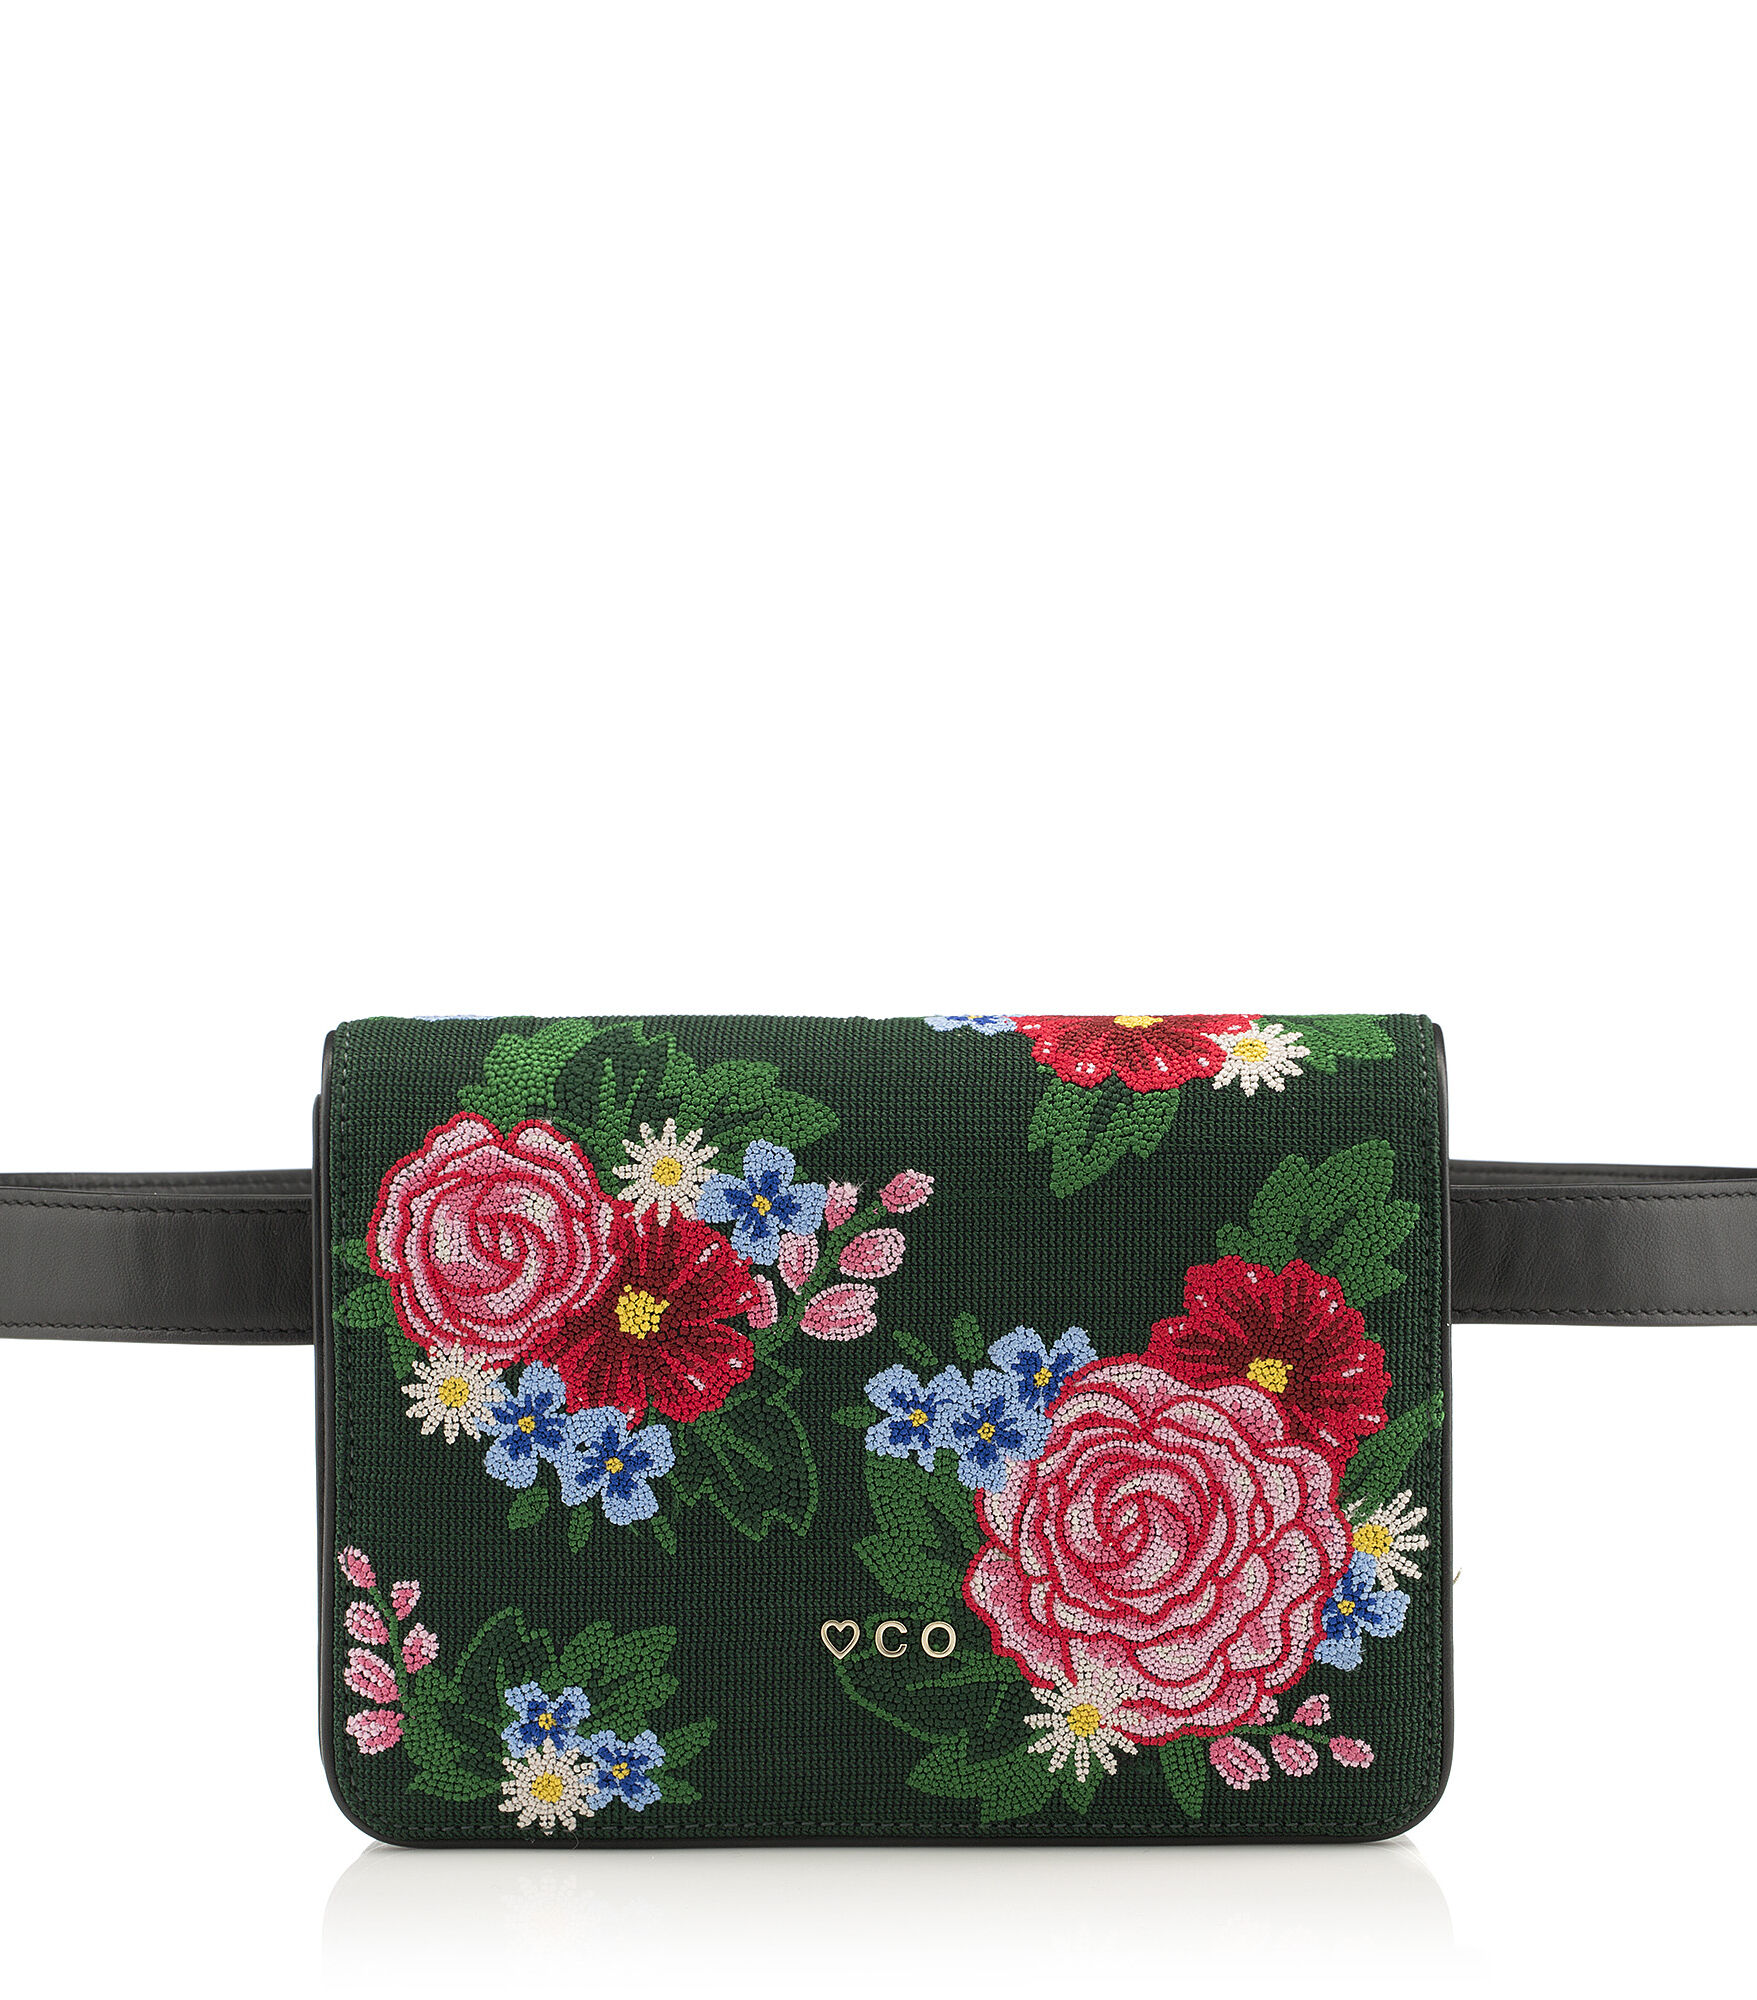 Charlotte Olympia Clutch and Handbags Women - ROSE GARDEN BELT BAG MULTI COLOUR Brass/crystals OS